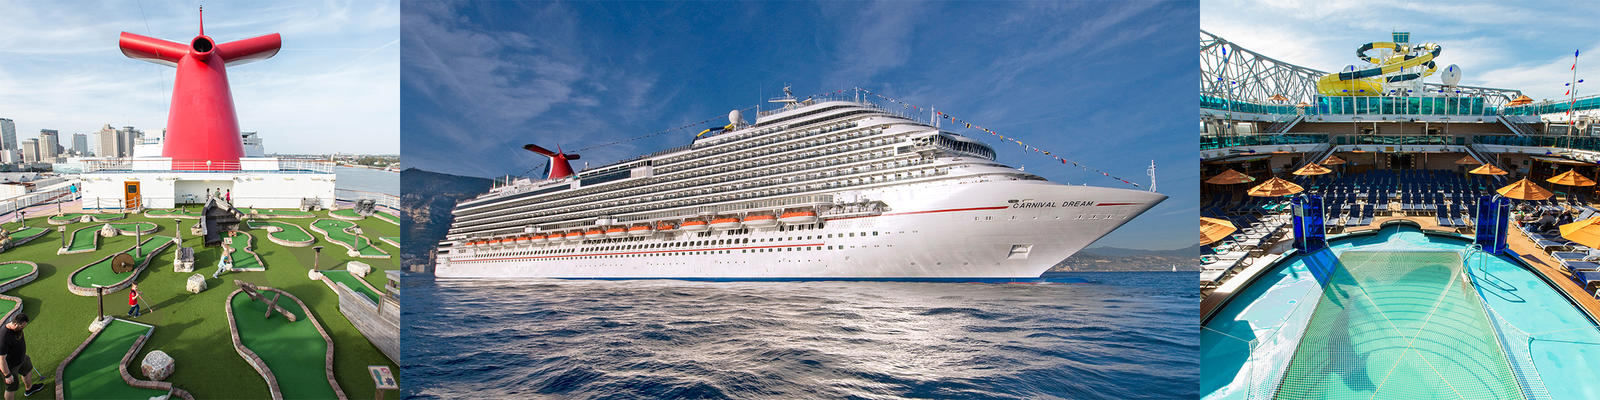 carnival dream cruise ship review photos departure ports on